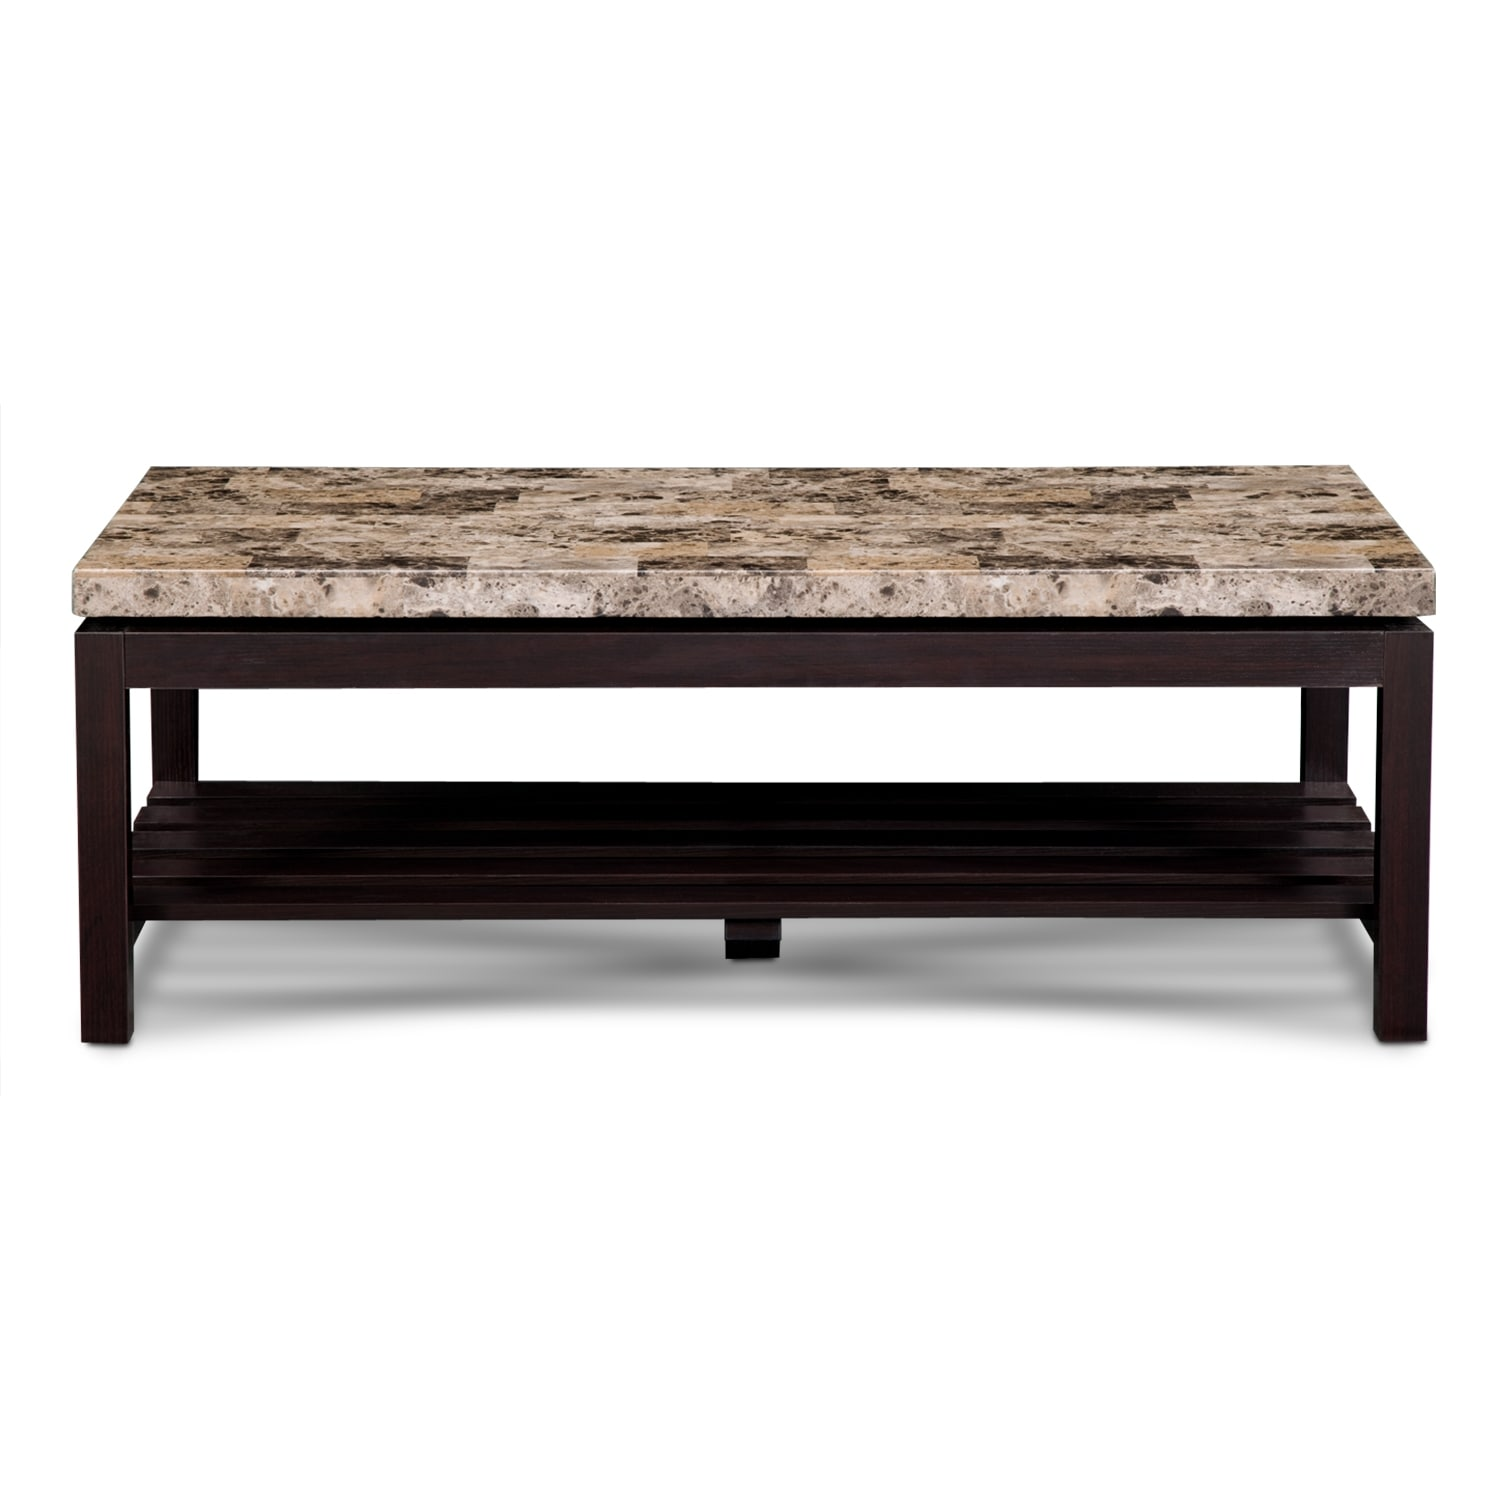 Audra cocktail table value city furniture for Coffee tables value city furniture